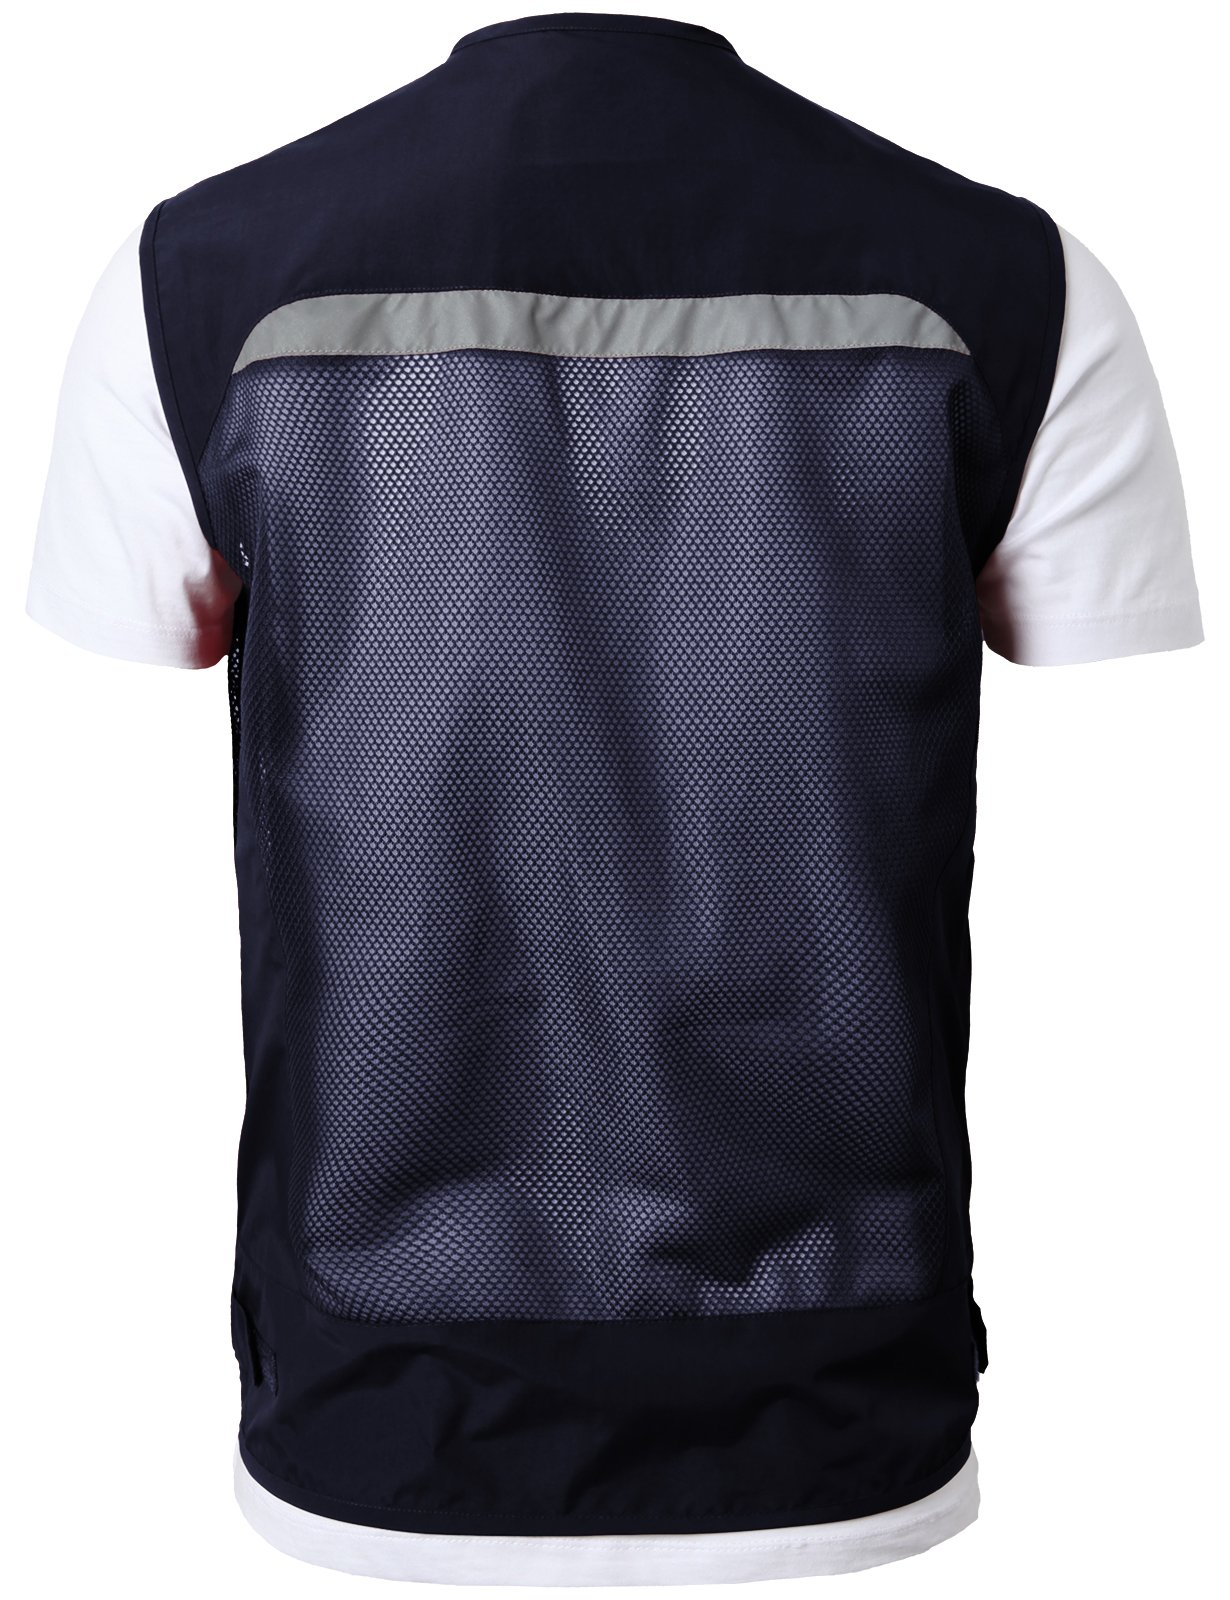 H2H Mens Casual Work Utility Hunting Fishing Vest Travels Sports Mesh Jacket with Multi-Pockets Navy US L/Asia XL (KMOV0144) by H2H (Image #3)